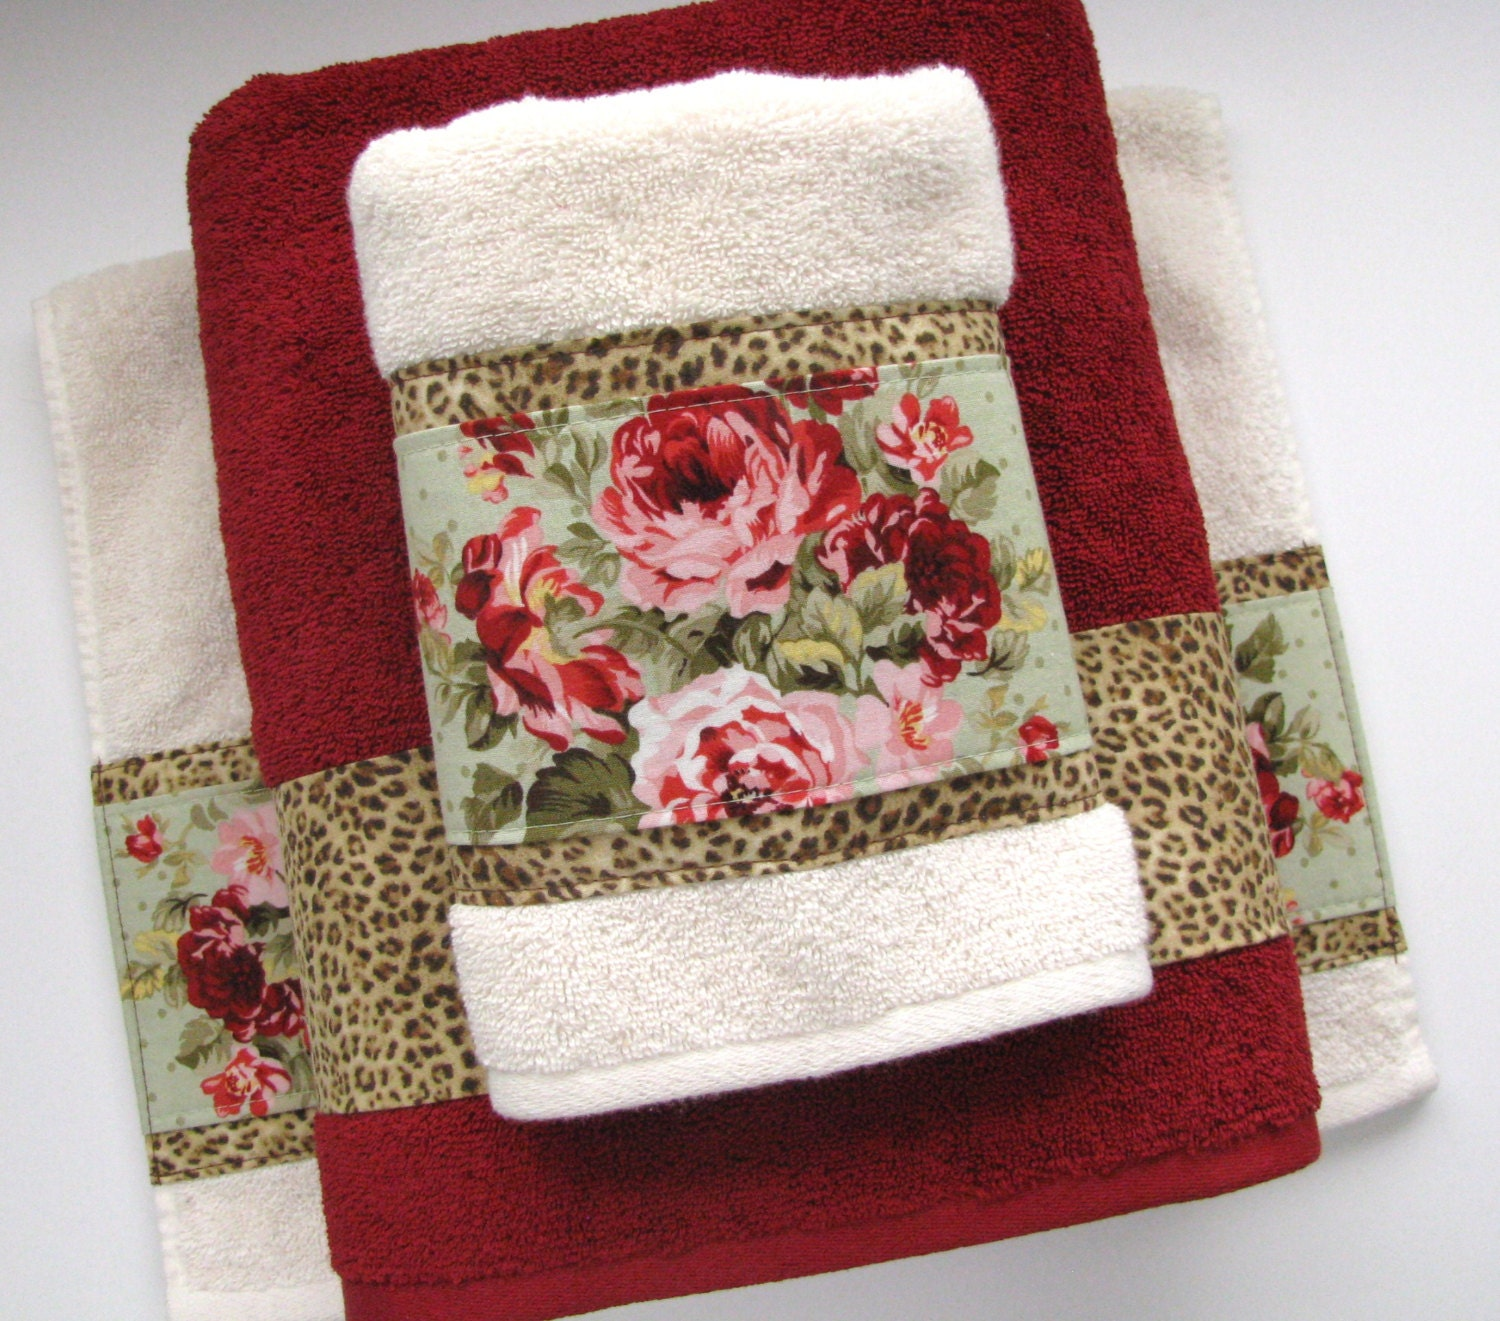 Bath Towels Towel Sets Vintage Rose Leopard Towels Red